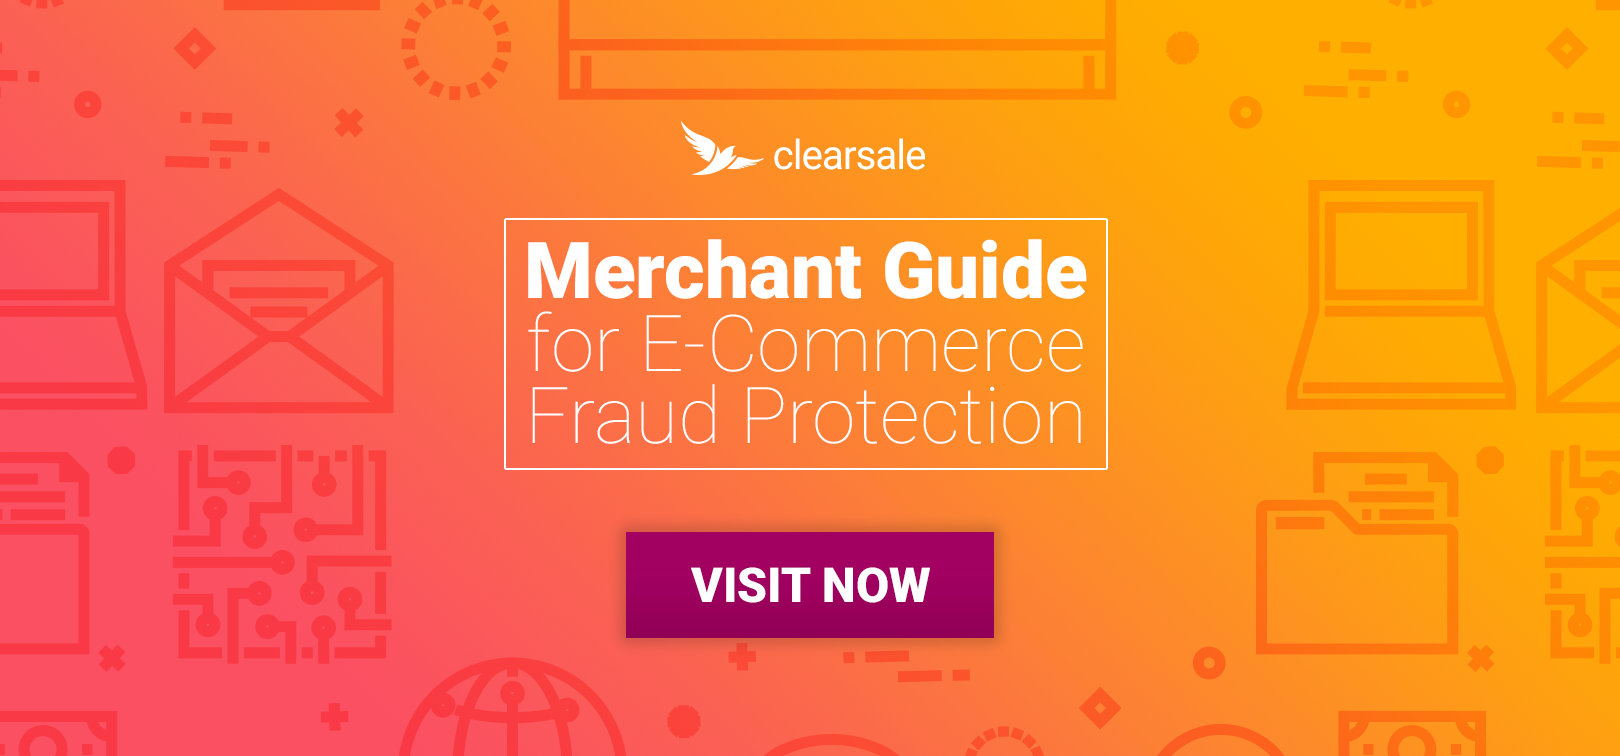 Merchant Guide for E-Commerce Fraud Protection